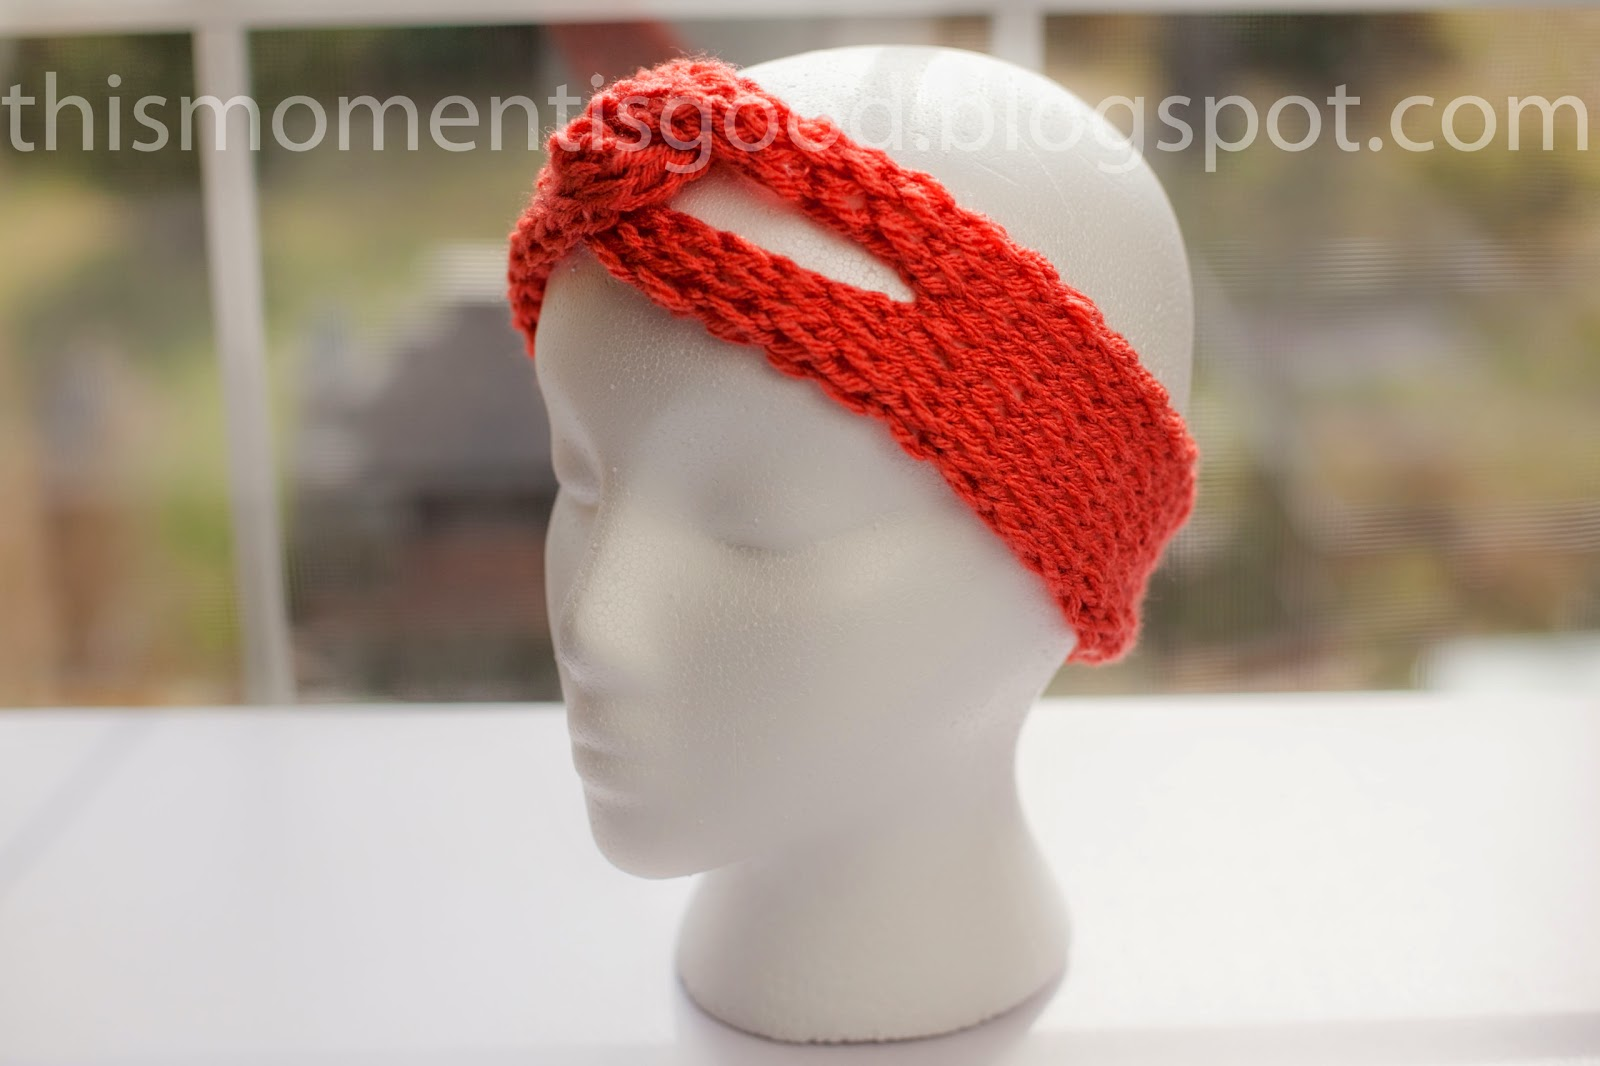 Loom Knit Twisted Headband Loom Knitting By This Moment Is Good